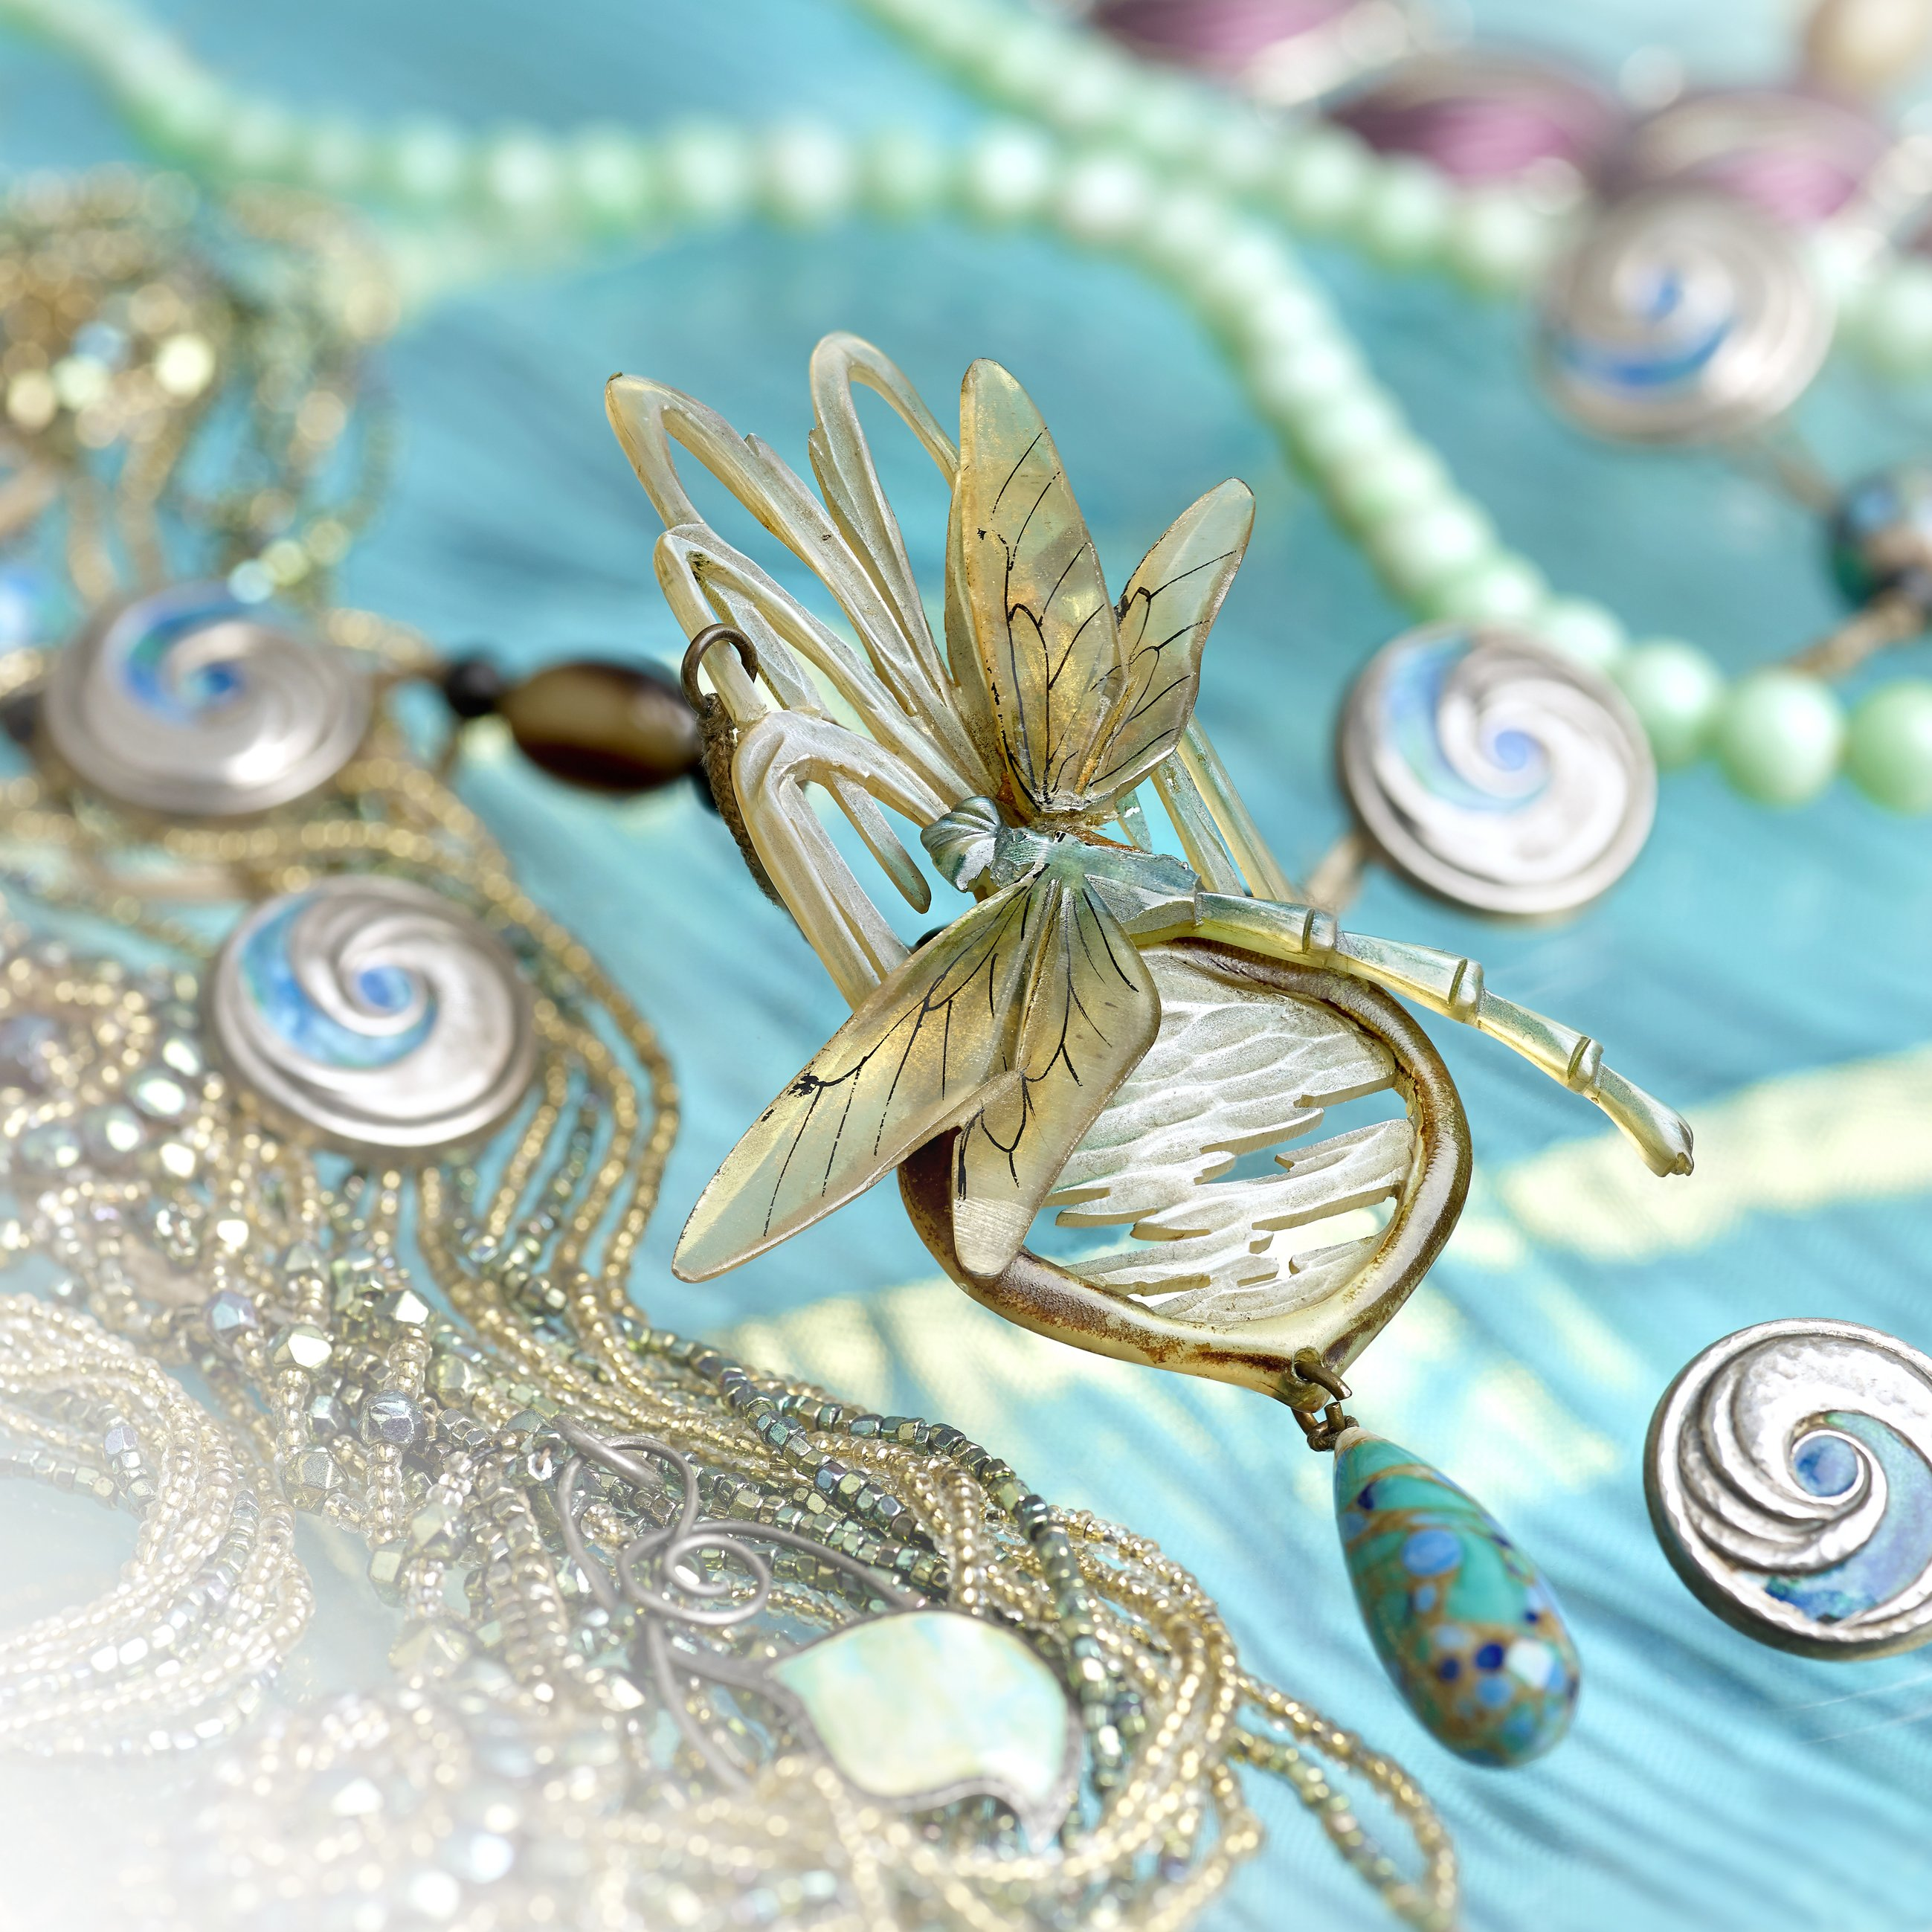 """<a href=""""https://www.fellows.co.uk/Vintage-Jewellery-Accessories/2017-01-30?utm_source=Ageless%20Heirlooms&utm_campaign=Ageless%20Heirlooms%20Vintage&utm_medium=blog&utm_content=Blog%20and%20social"""" target=""""_blank"""">Vintage Jewelry Auction, January 30th</a>"""